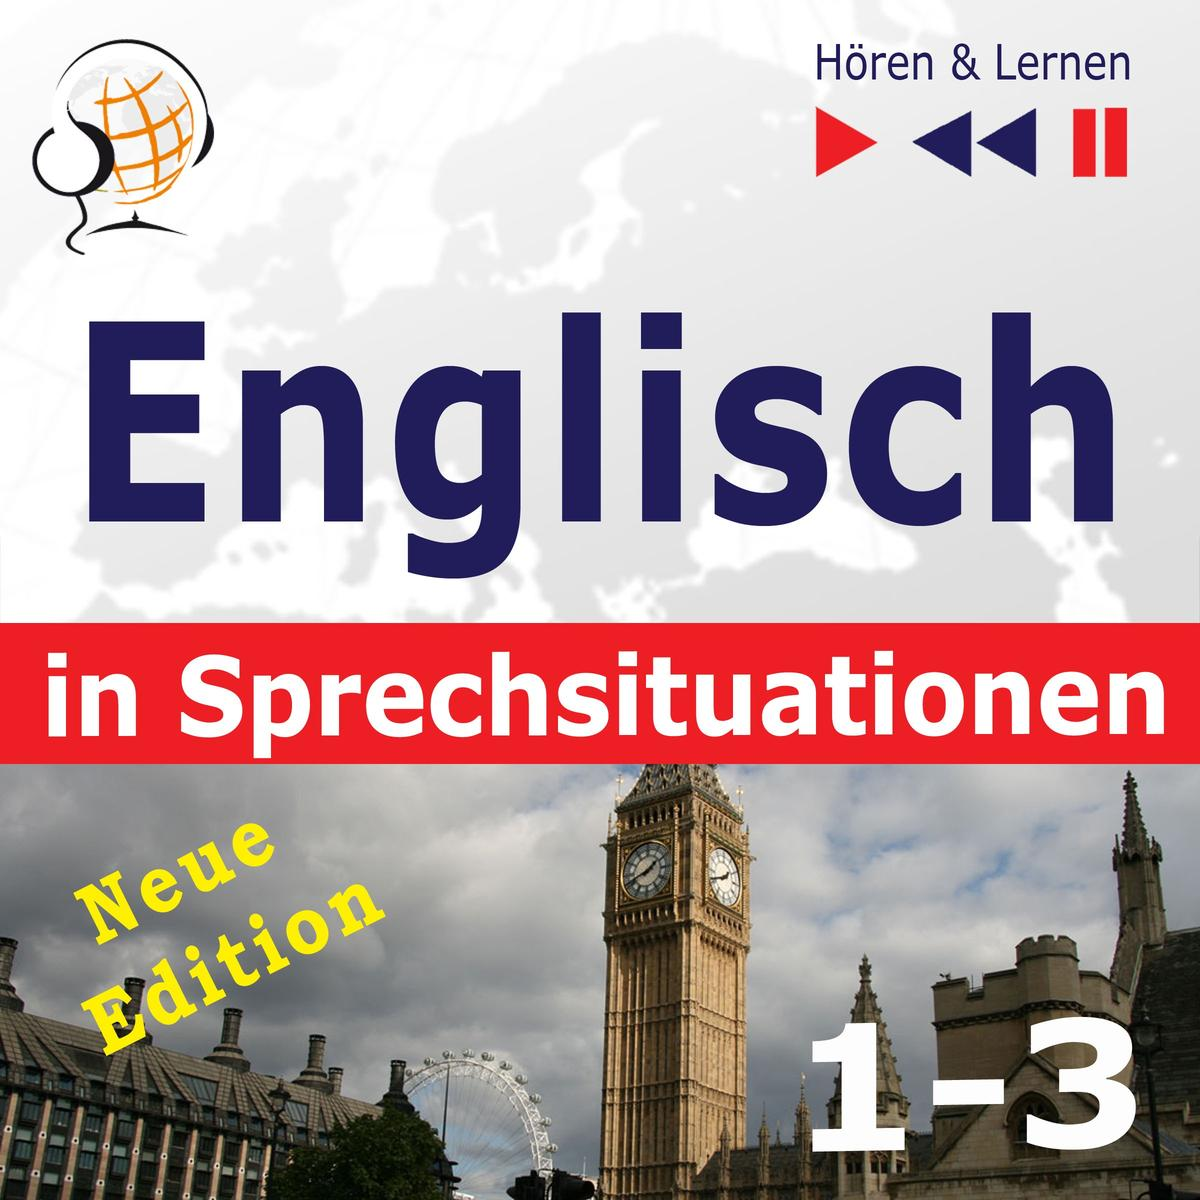 Englisch in Sprechsituationen. 1-3 – Neue Edition: A Month in Brighton + Holiday Travels + Business English (47 Konversationsthemen auf dem Niveau B1-B2 – Hören & Lernen) - Audiobook